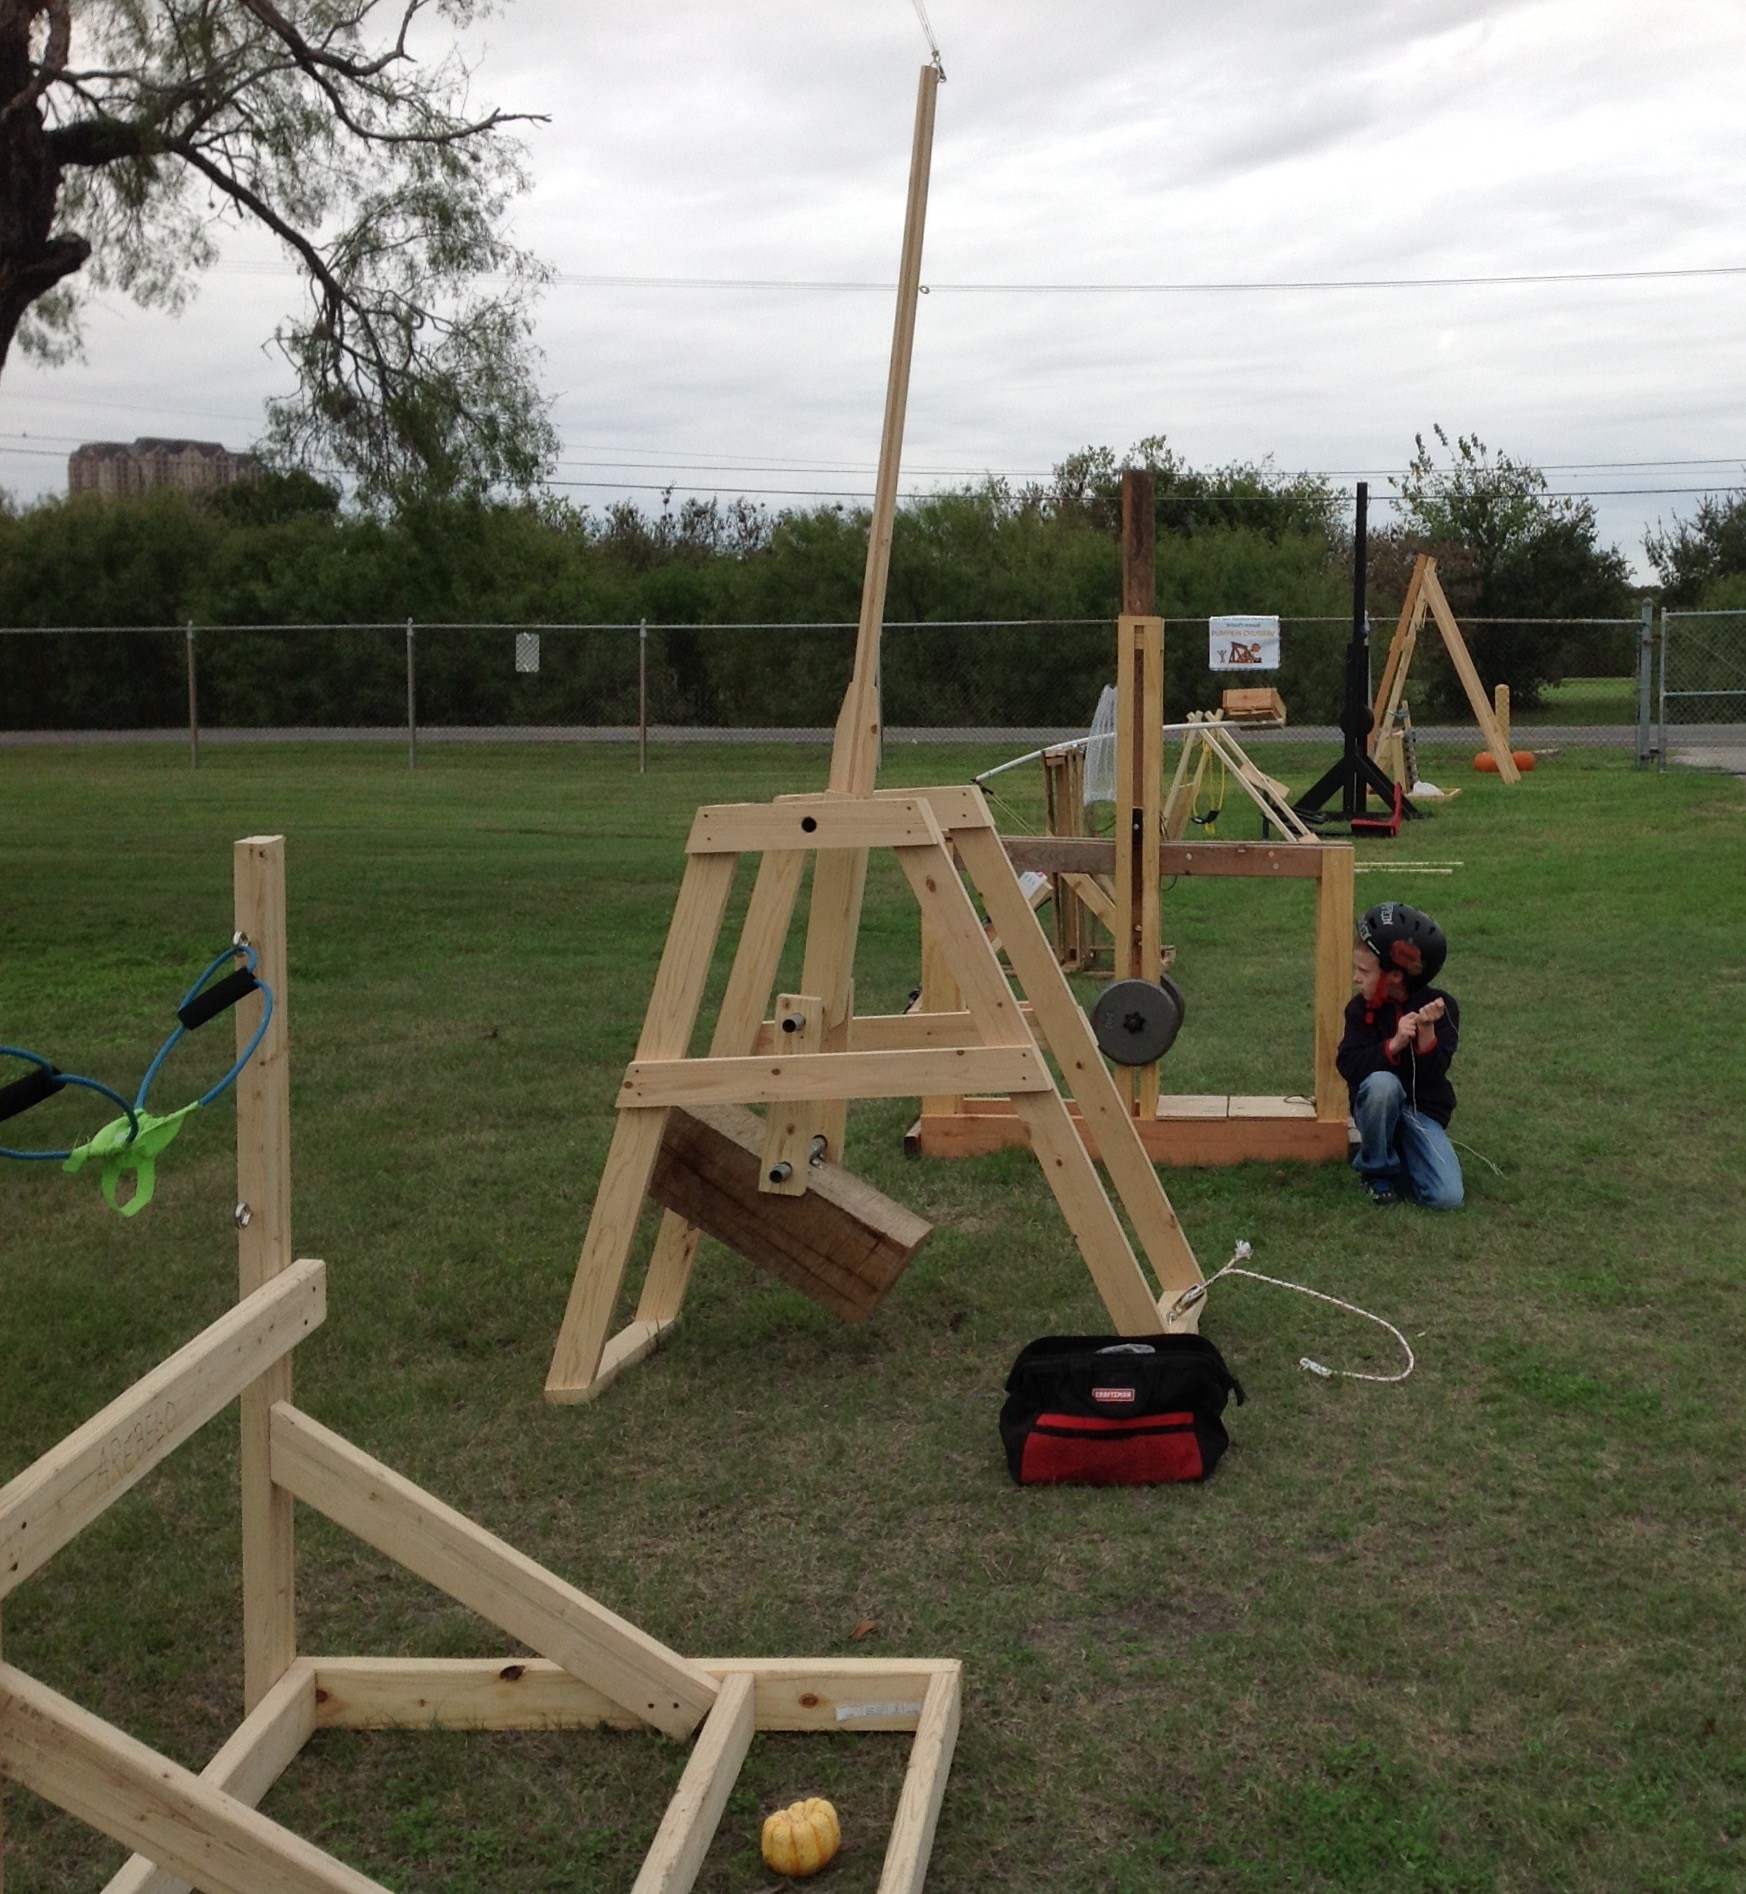 Trebuchets Built for Annual Pumpkin Chunkin' Event